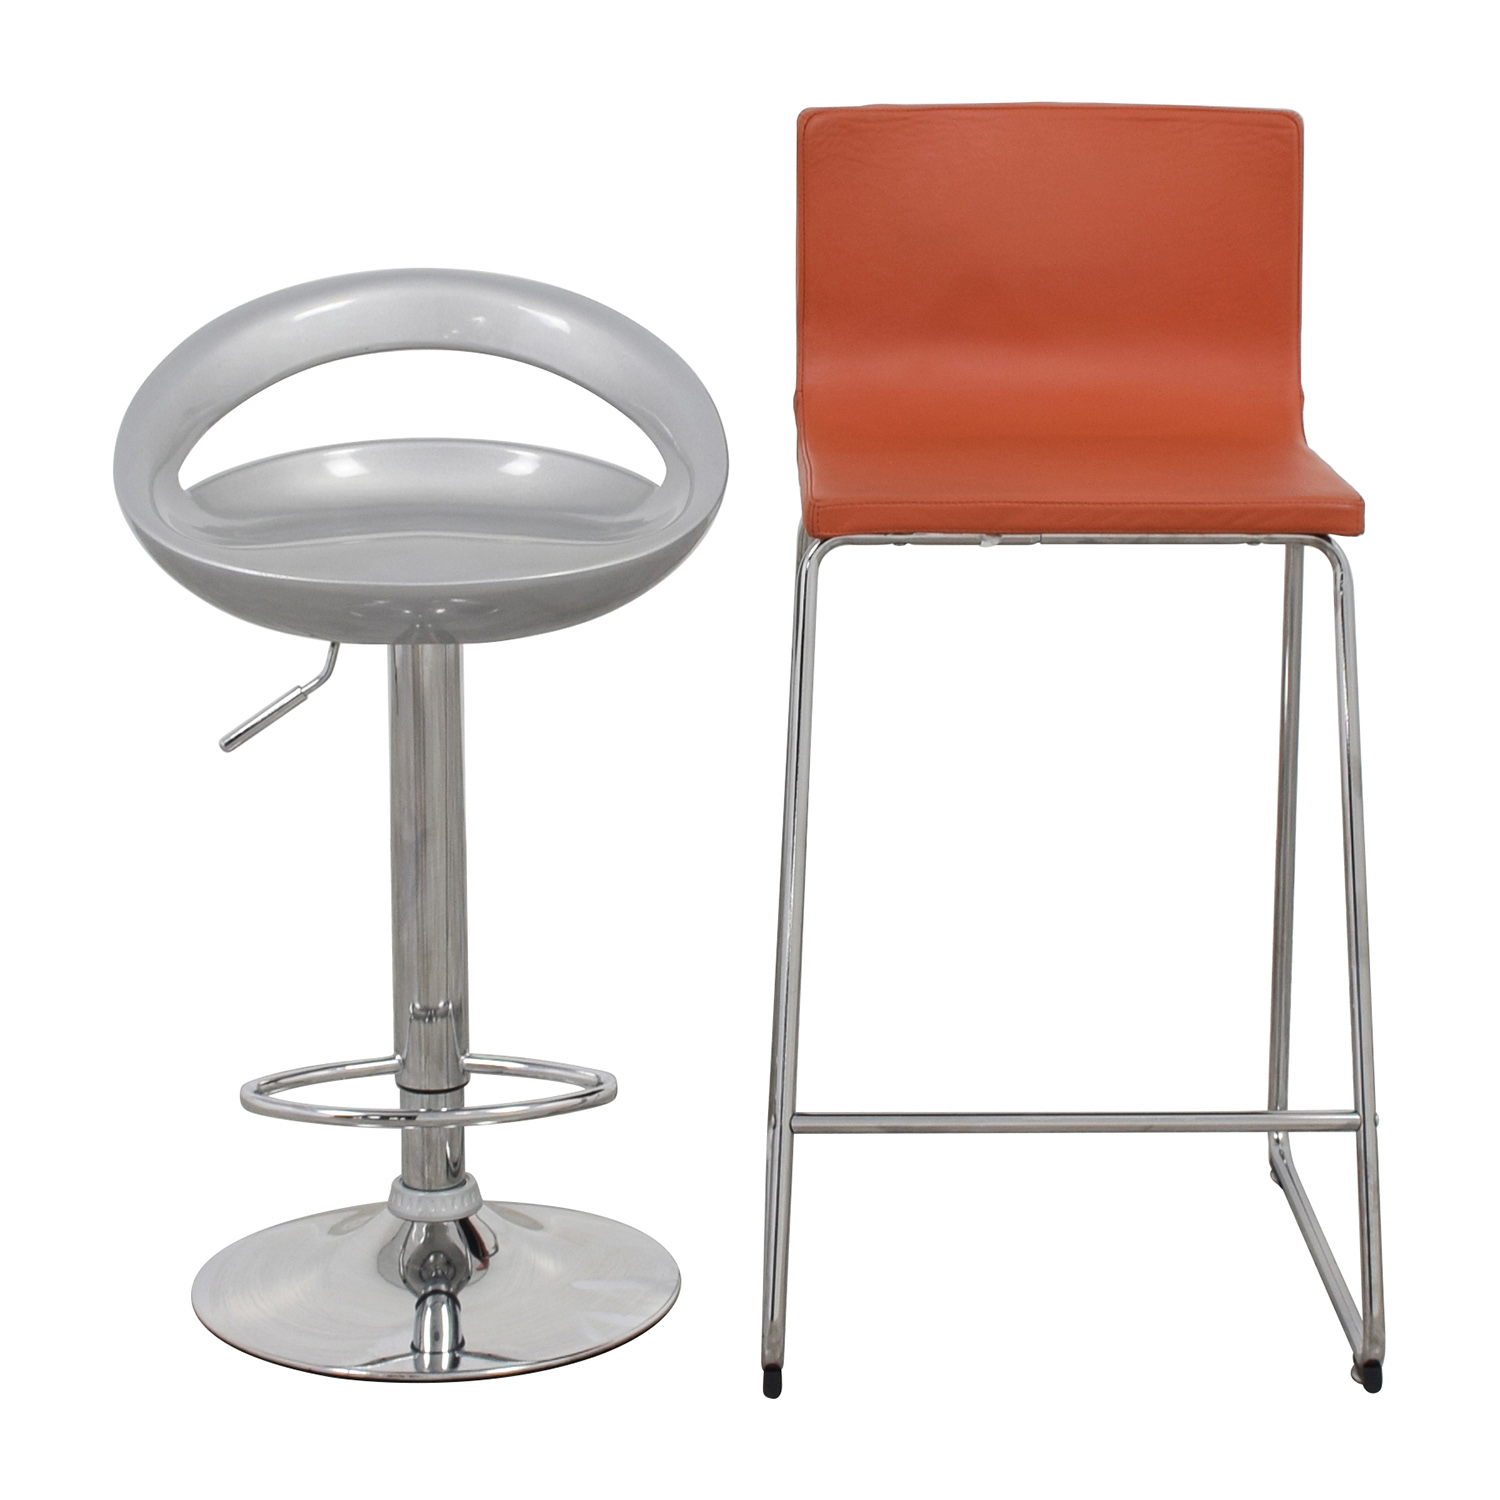 Peachy 75 Off Pair Of Modern Orange And Silver Bar Stools Chairs Gmtry Best Dining Table And Chair Ideas Images Gmtryco